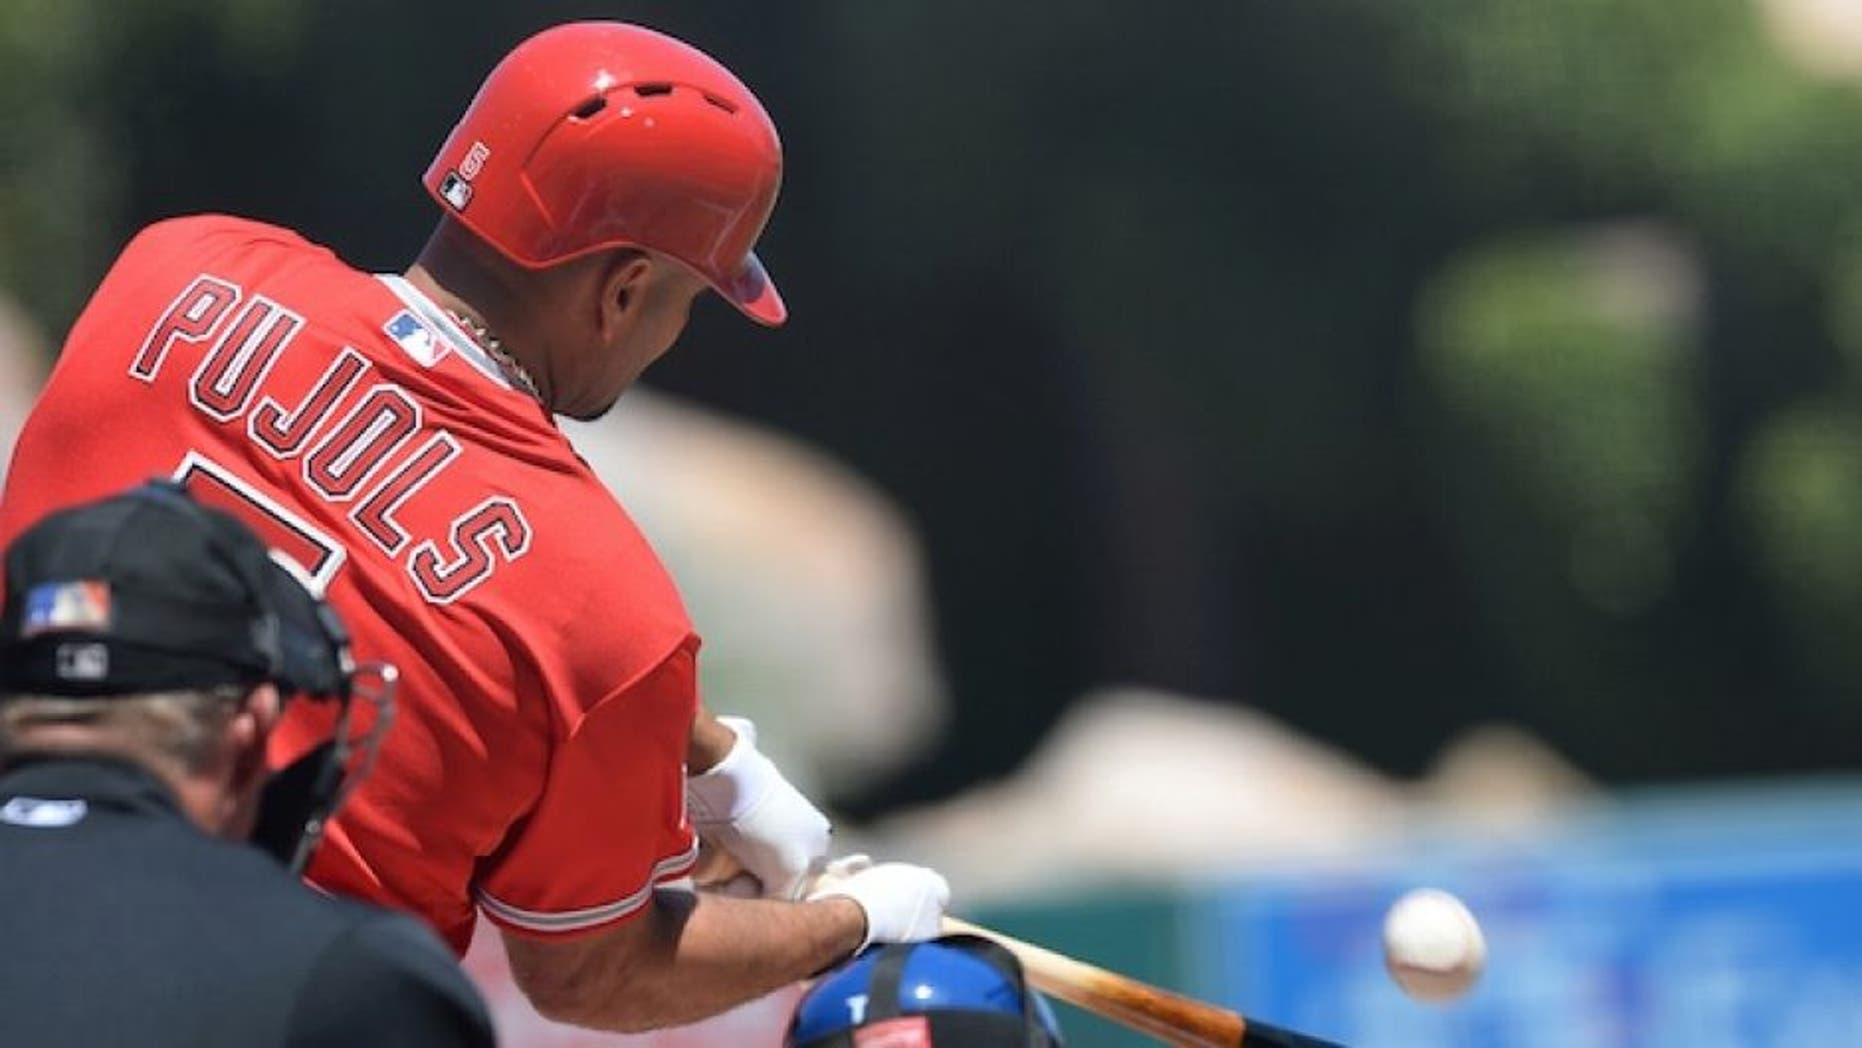 Apr 12, 2015; Anaheim, CA, USA; Los Angeles Angels first baseman Albert Pujols (5) connects for a solo home run in the first inning of the game against the Kansas City Royals at Angel Stadium of Anaheim. Mandatory Credit: Jayne Kamin-Oncea-USA TODAY Sports